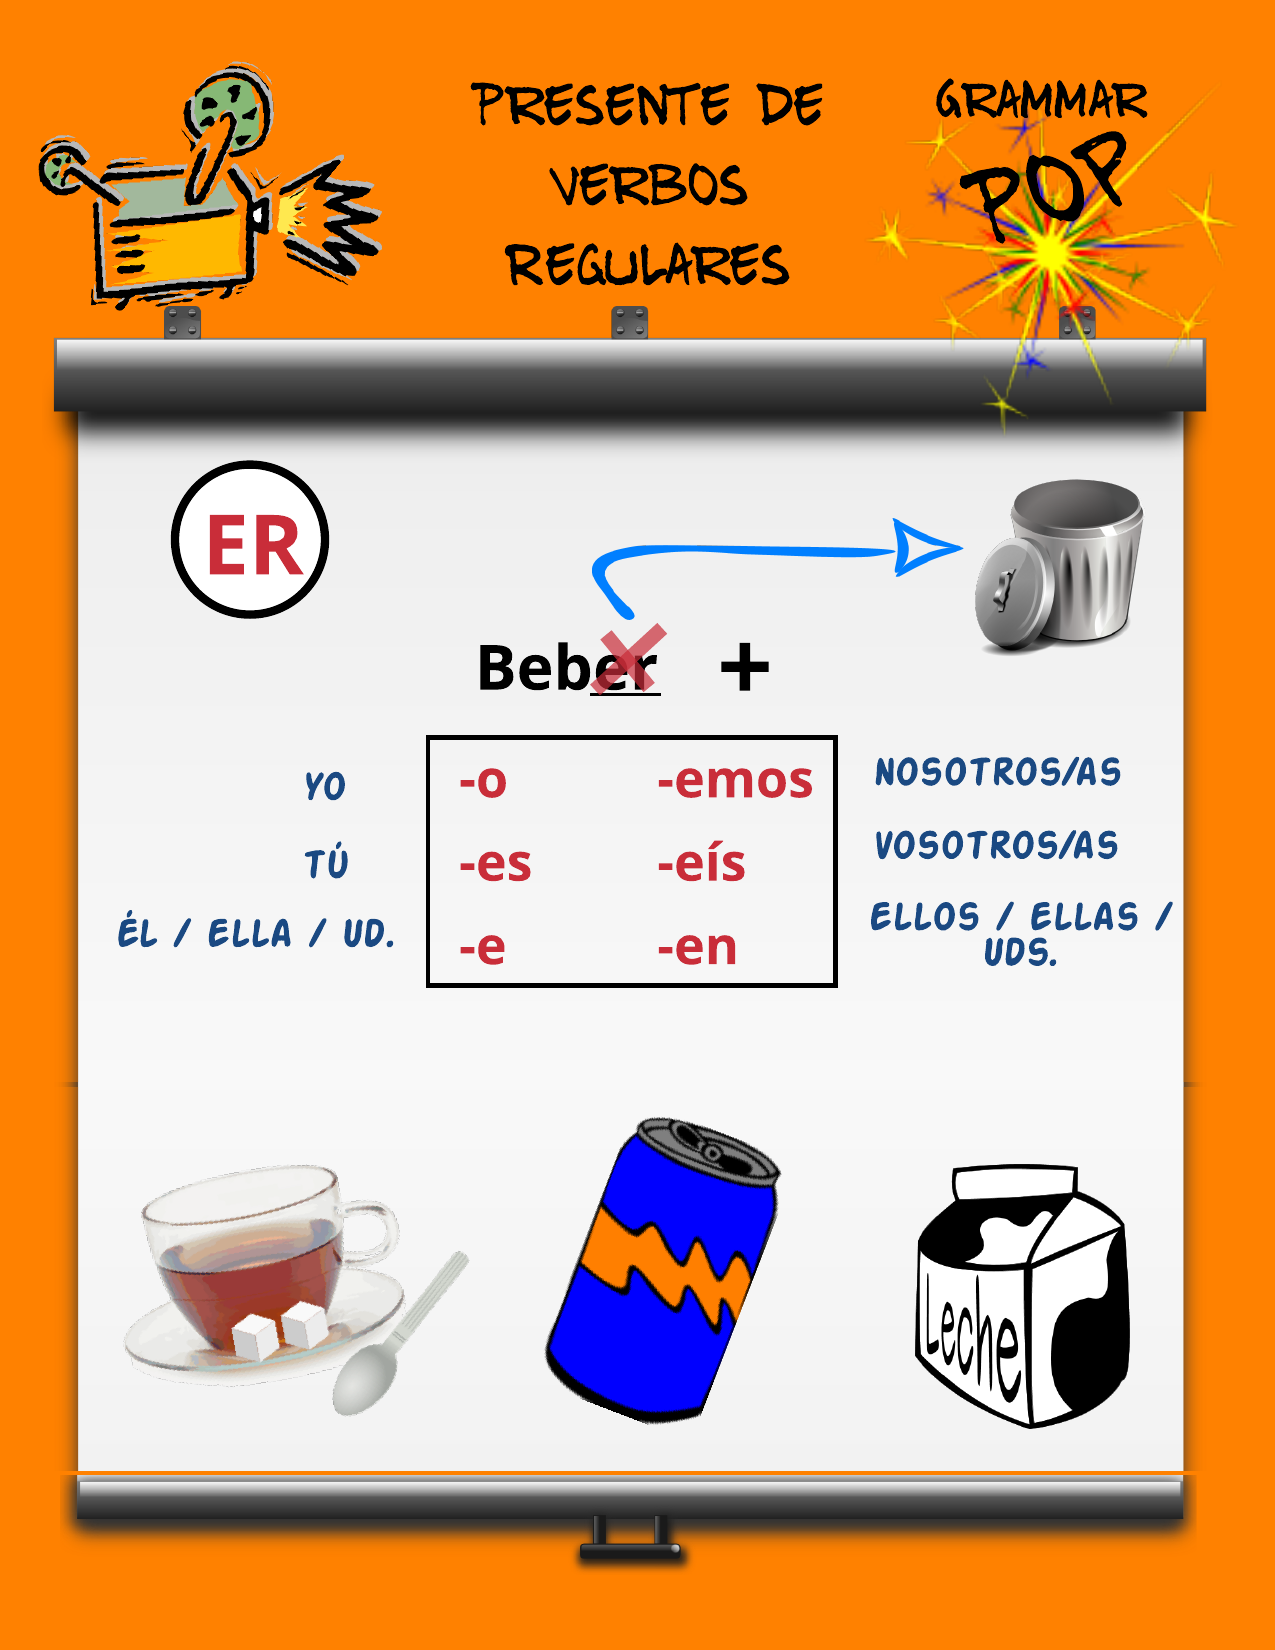 I Love This Free Slide Show On How To Conjugate Regular